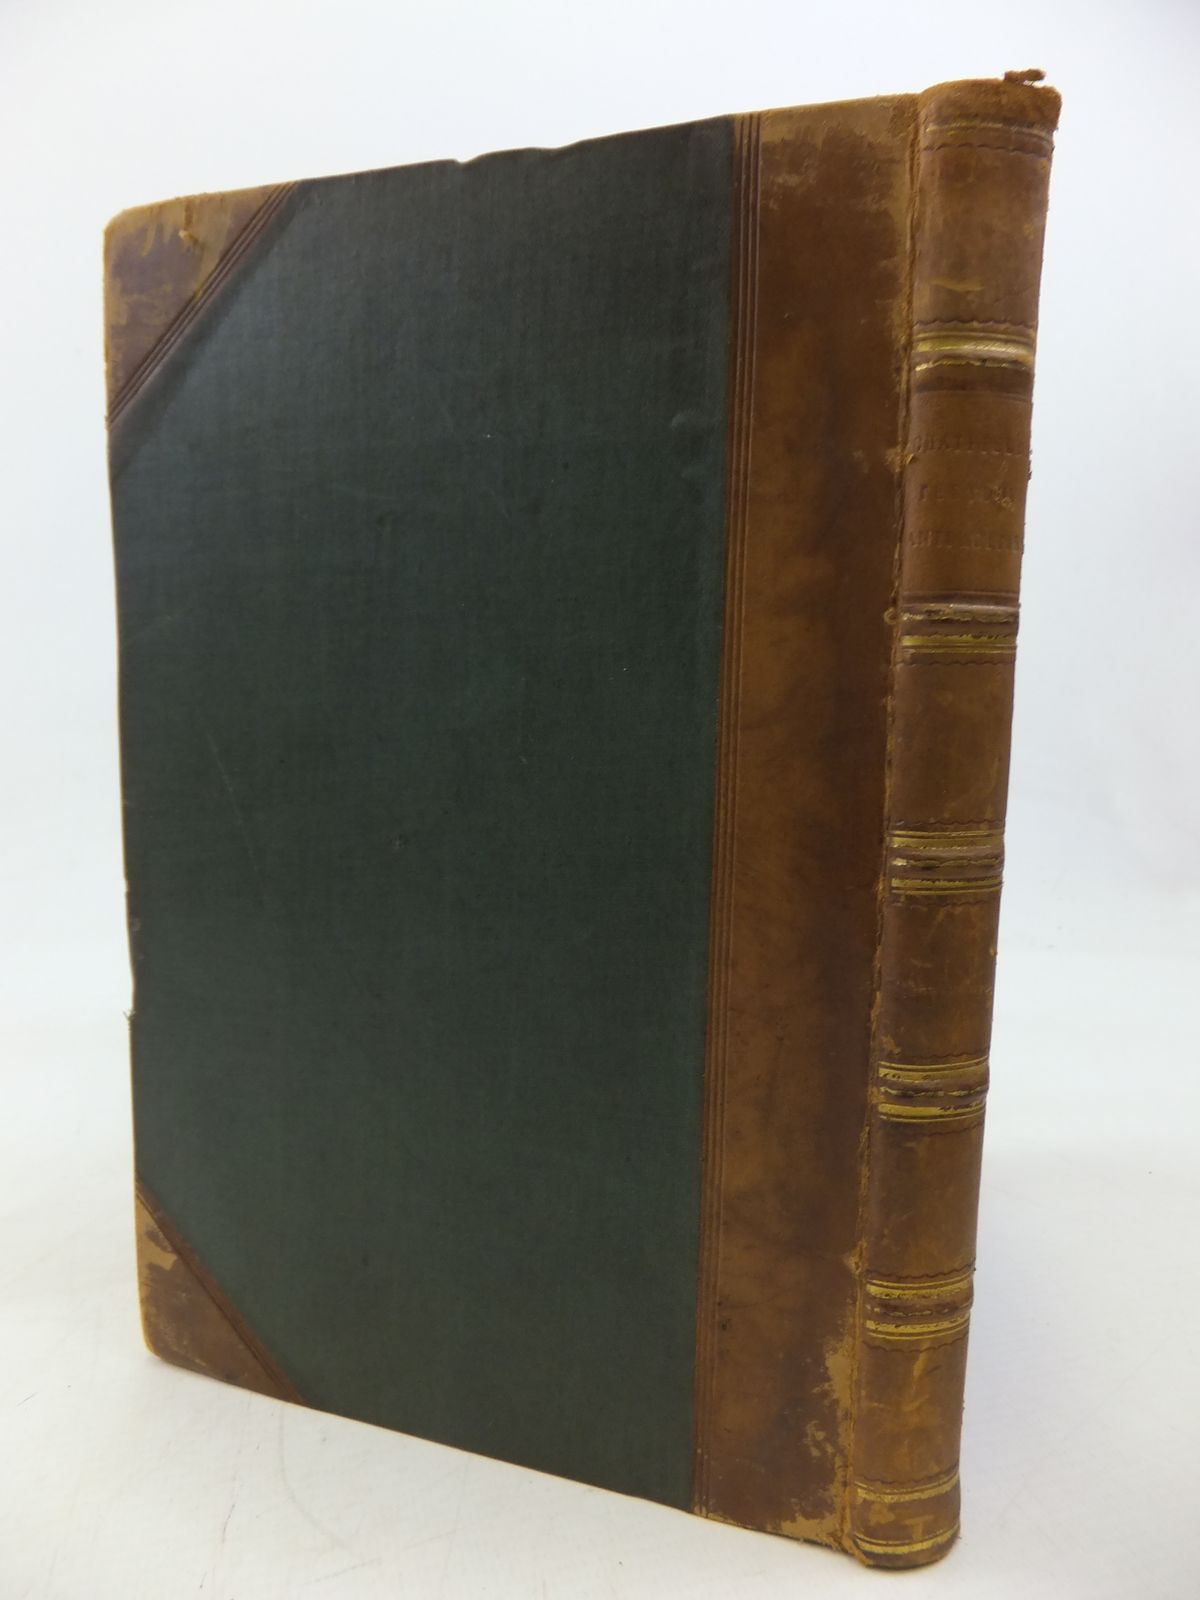 Photo of TEUTONIC ANTIQUITIES; OR, HISTORICAL AND GEOGRAPHICAL SKETCHES OF ROMAN AND BARBARIAN HISTORY written by Chatfield, C. published by Hurst, Chance And Co. (STOCK CODE: 1810345)  for sale by Stella & Rose's Books